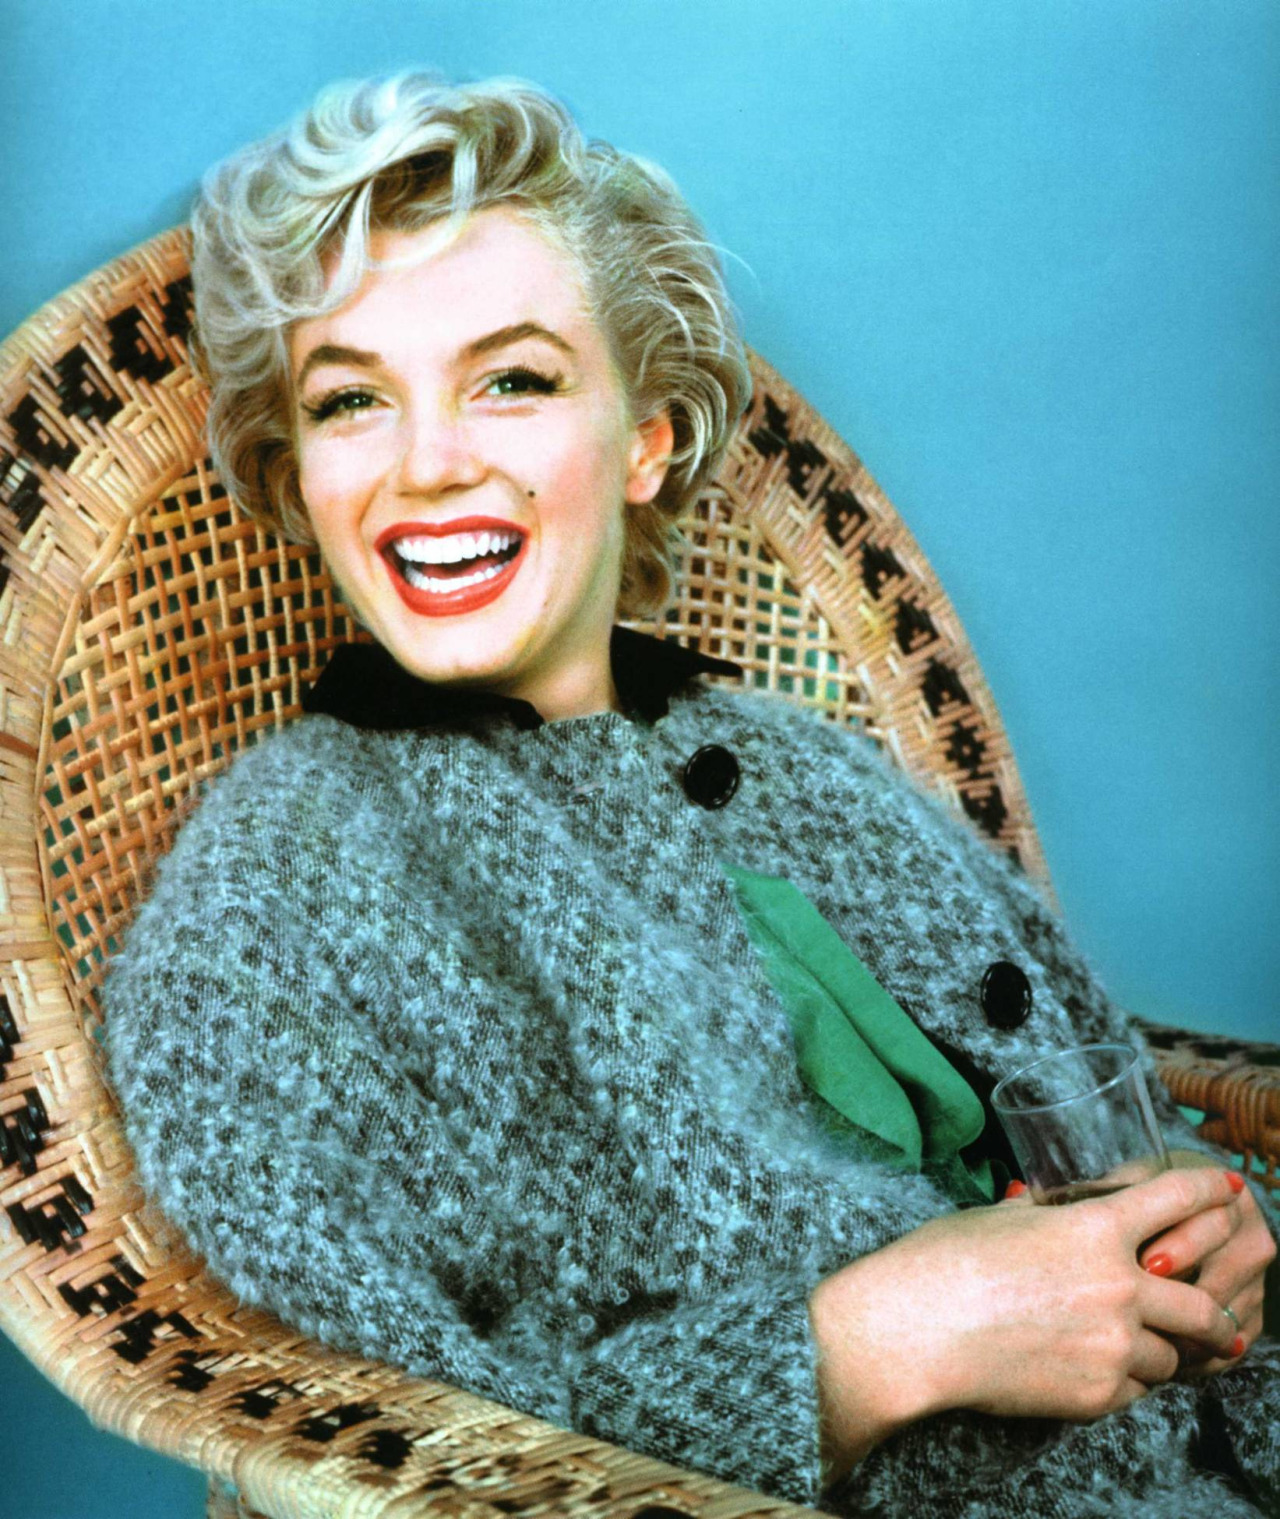 seductivepineapples:  fluorescent-waters:  thebeautyofmarilyn:  Marilyn photographed by Milton Greene, 1954.   ☾☯soft grunge, vintage, beauty☯☽   ☯ grunge here☯